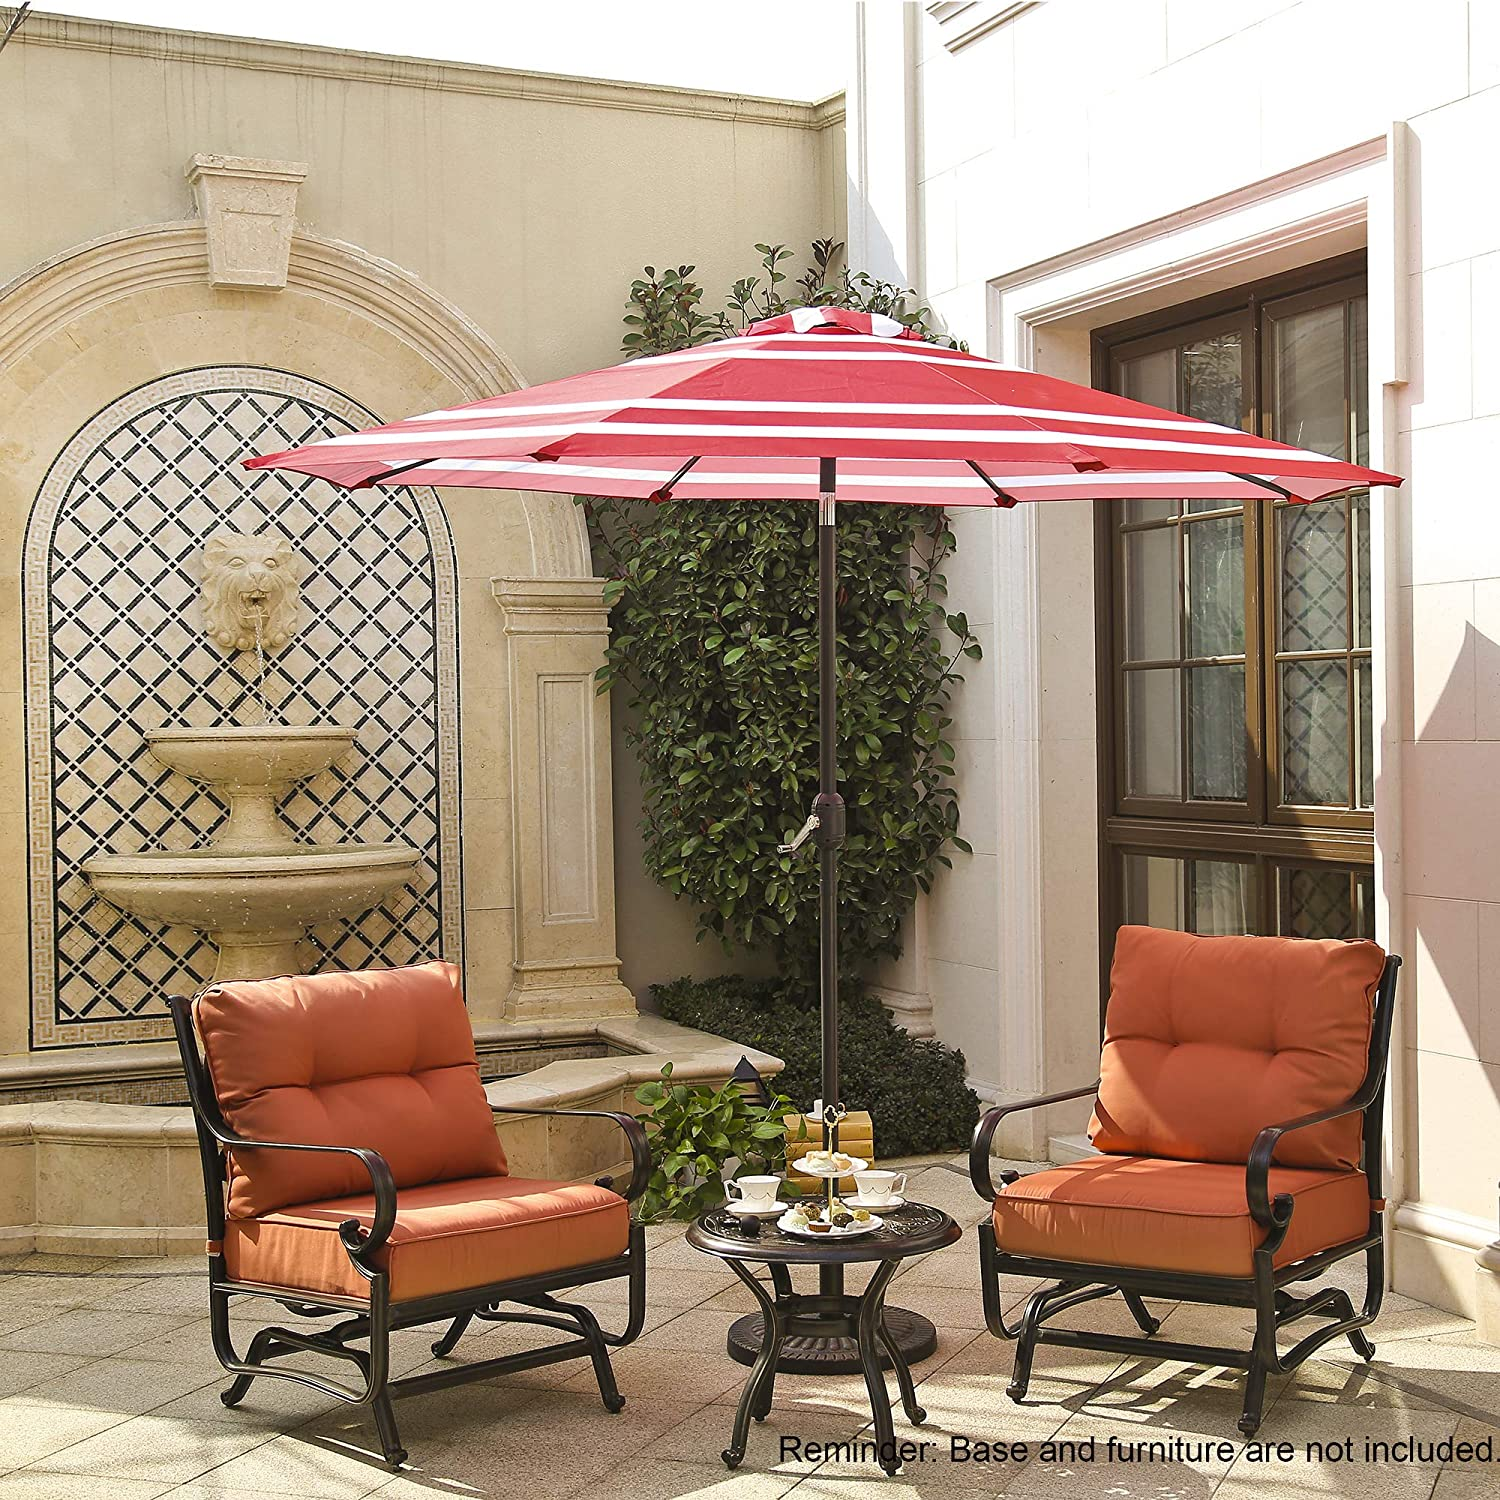 Aok Garden 9 Feet Patio Outdoor Fashion Pattern Umbrella Bendable Table Garden Umbrella with W Crank System and tilt Function Use Update Fabric,Red